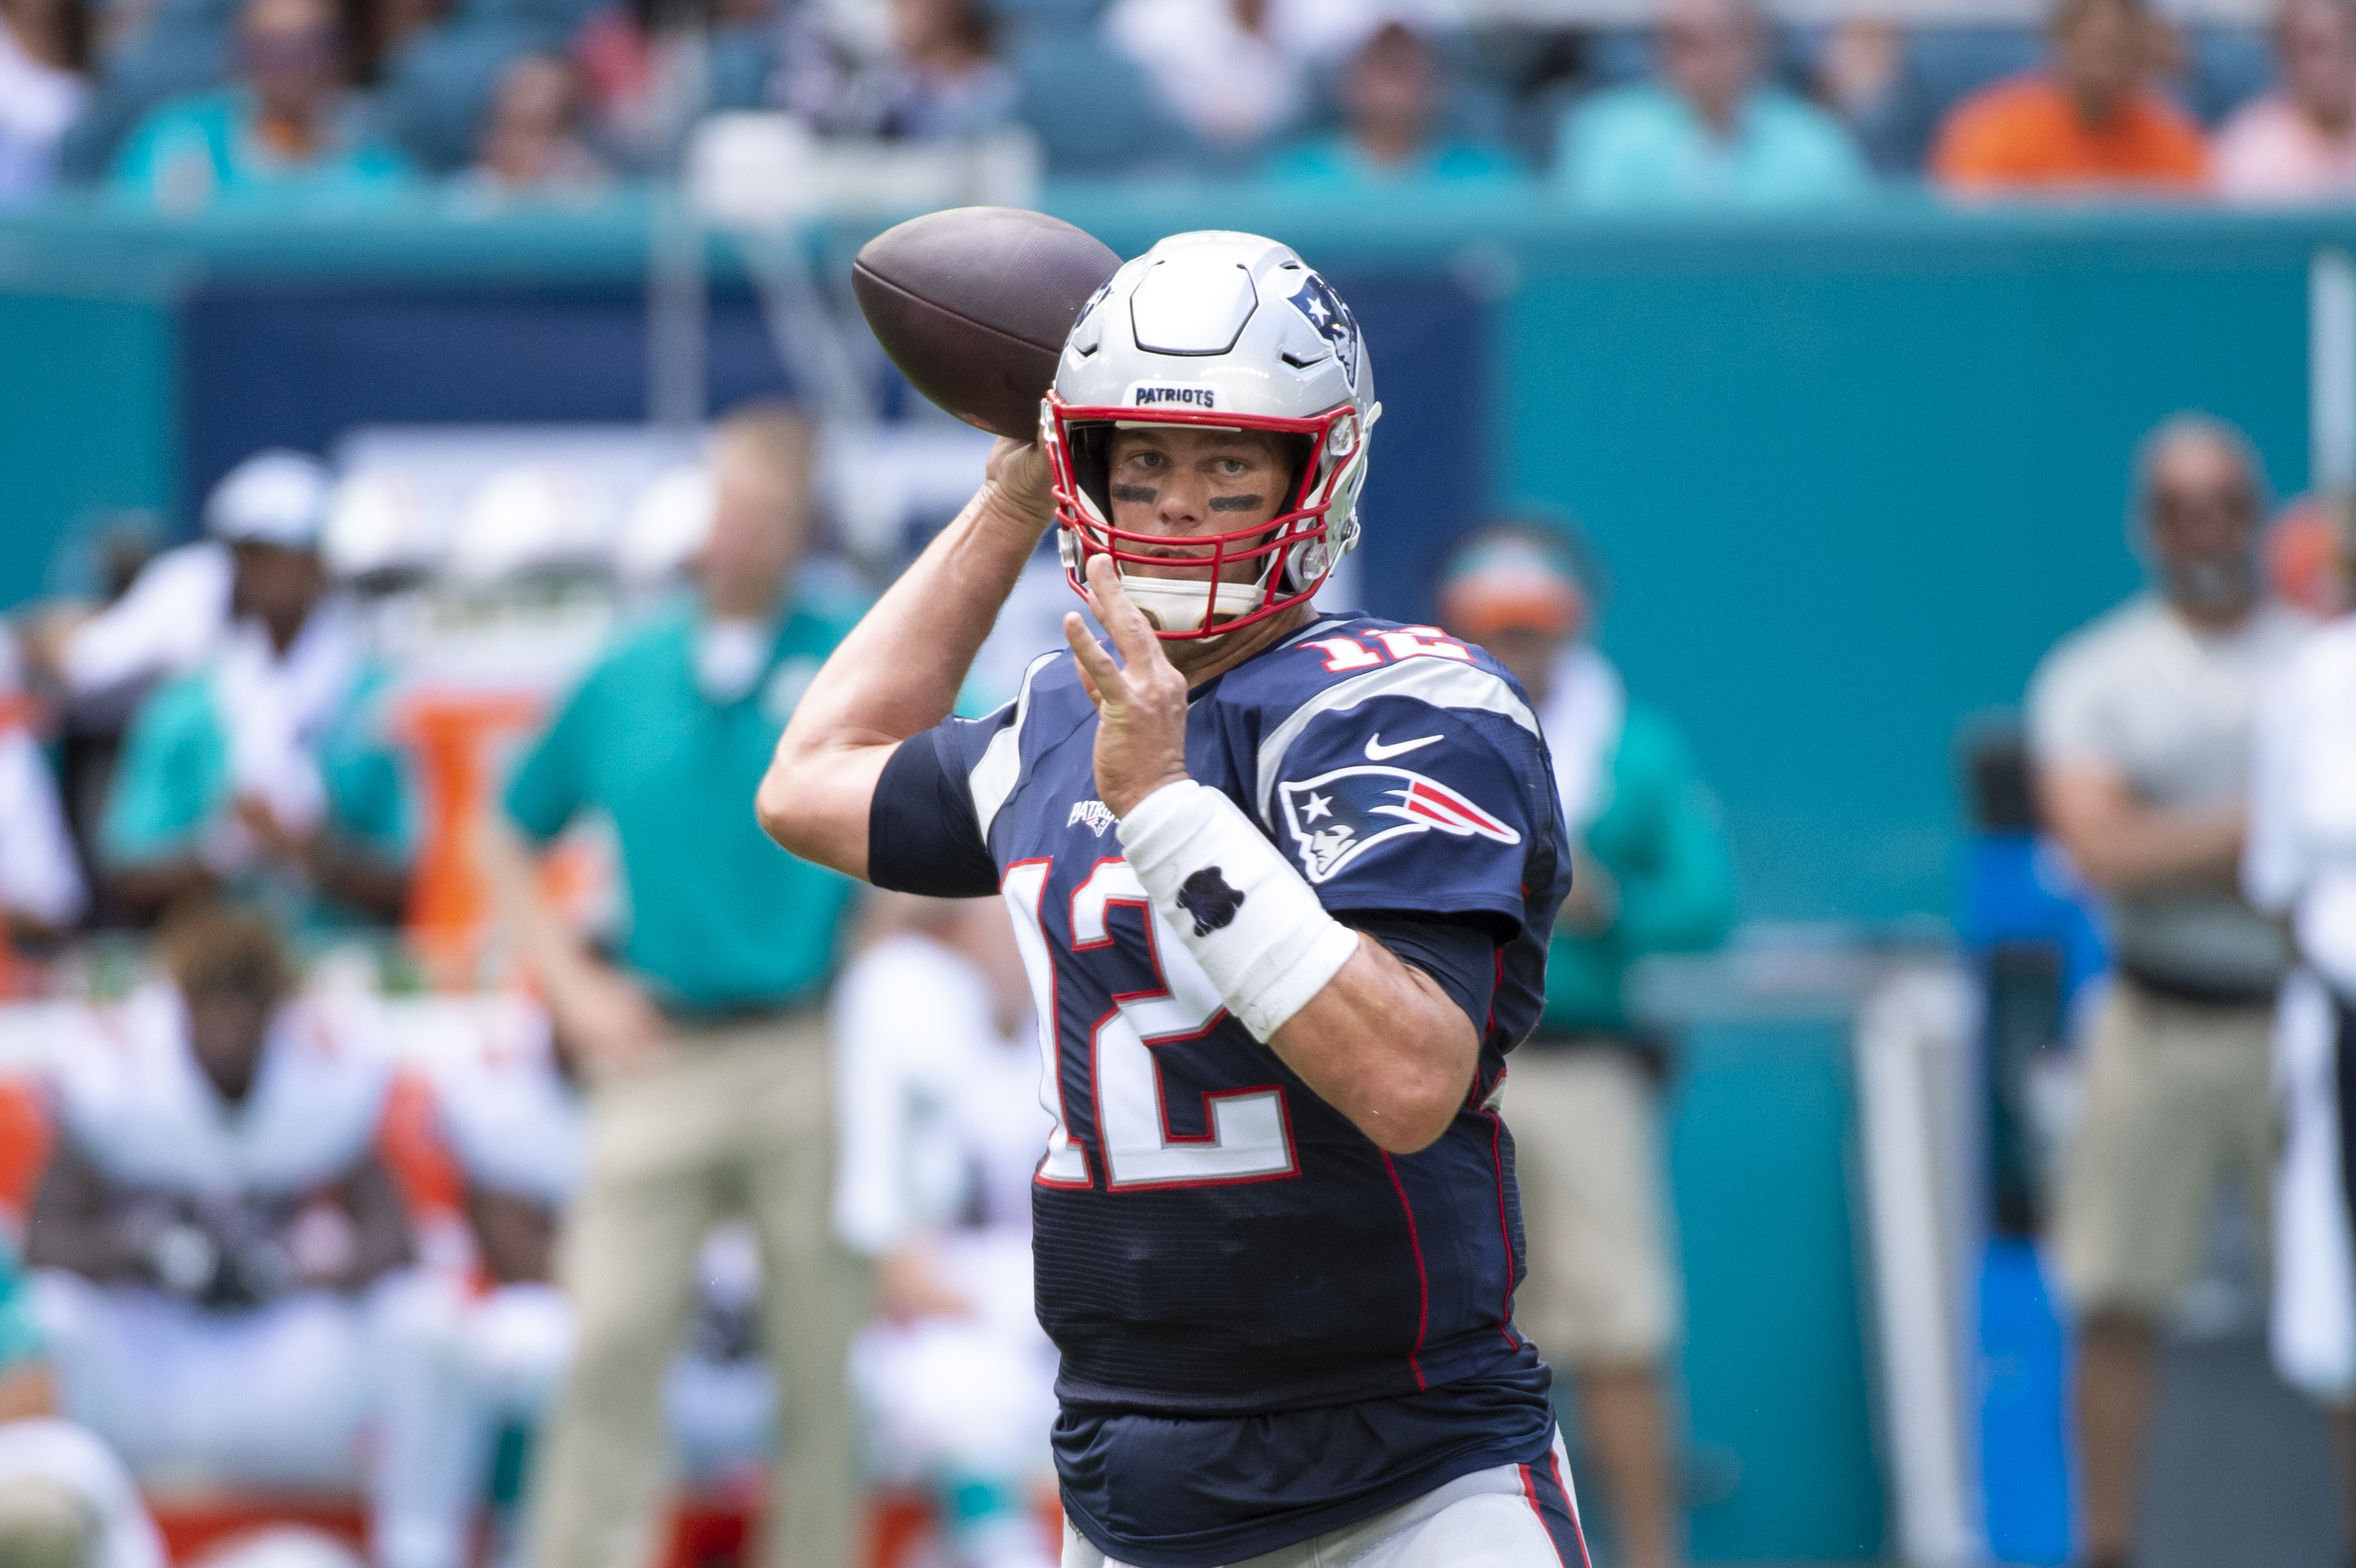 NFL: SEP 15 Patriots at Dolphins